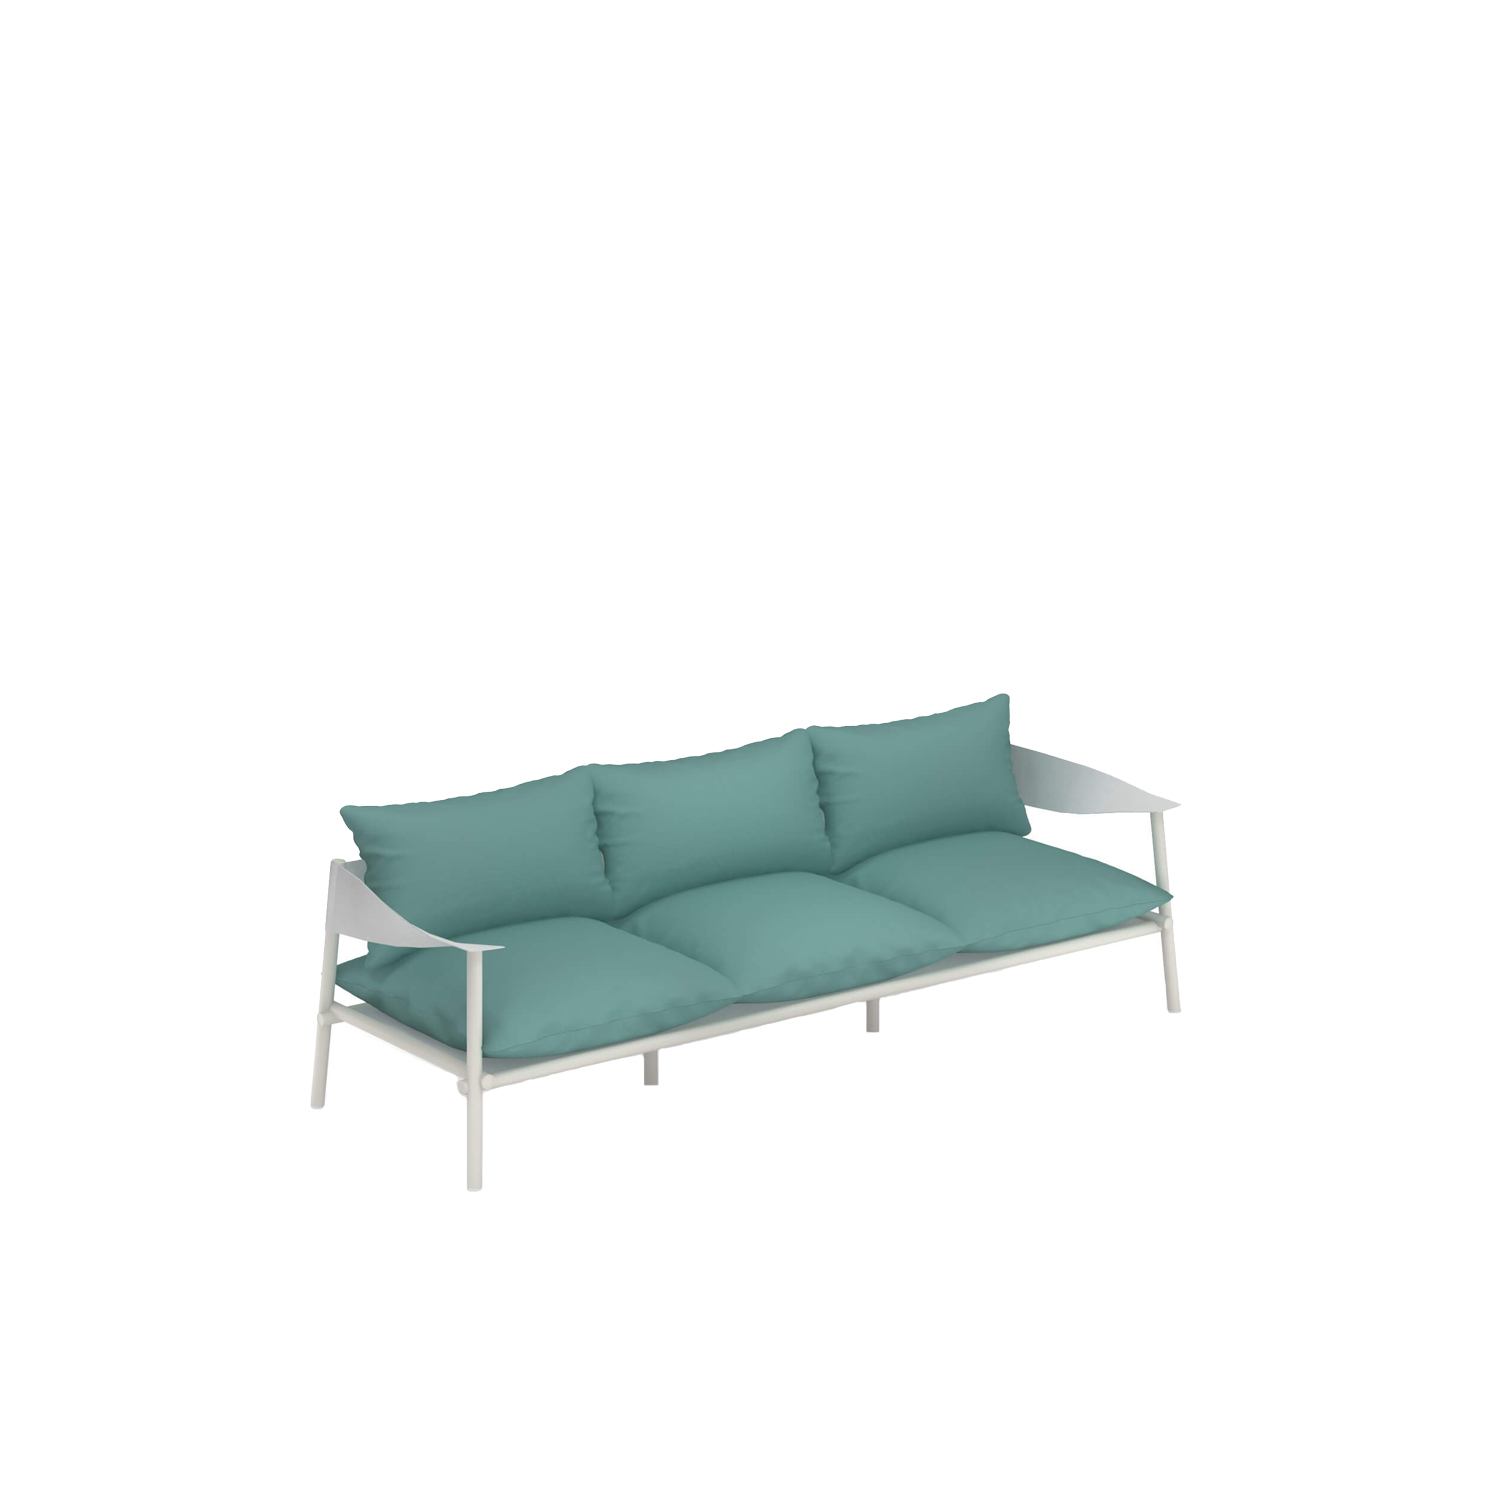 Terramare Three Seater Sofa - Welcoming shapes and wide dimensions characterise the Terramare collection by Studio Chiaramonte-Marin, ideal for cosy and personal settings both indoors and outdoors. A complete range of furniture for both dining and living areas. This sofa has a frame made from aluminium and armrests in eco-leather. This sofa does not come with cushions. Please enquire for more details.   | Matter of Stuff